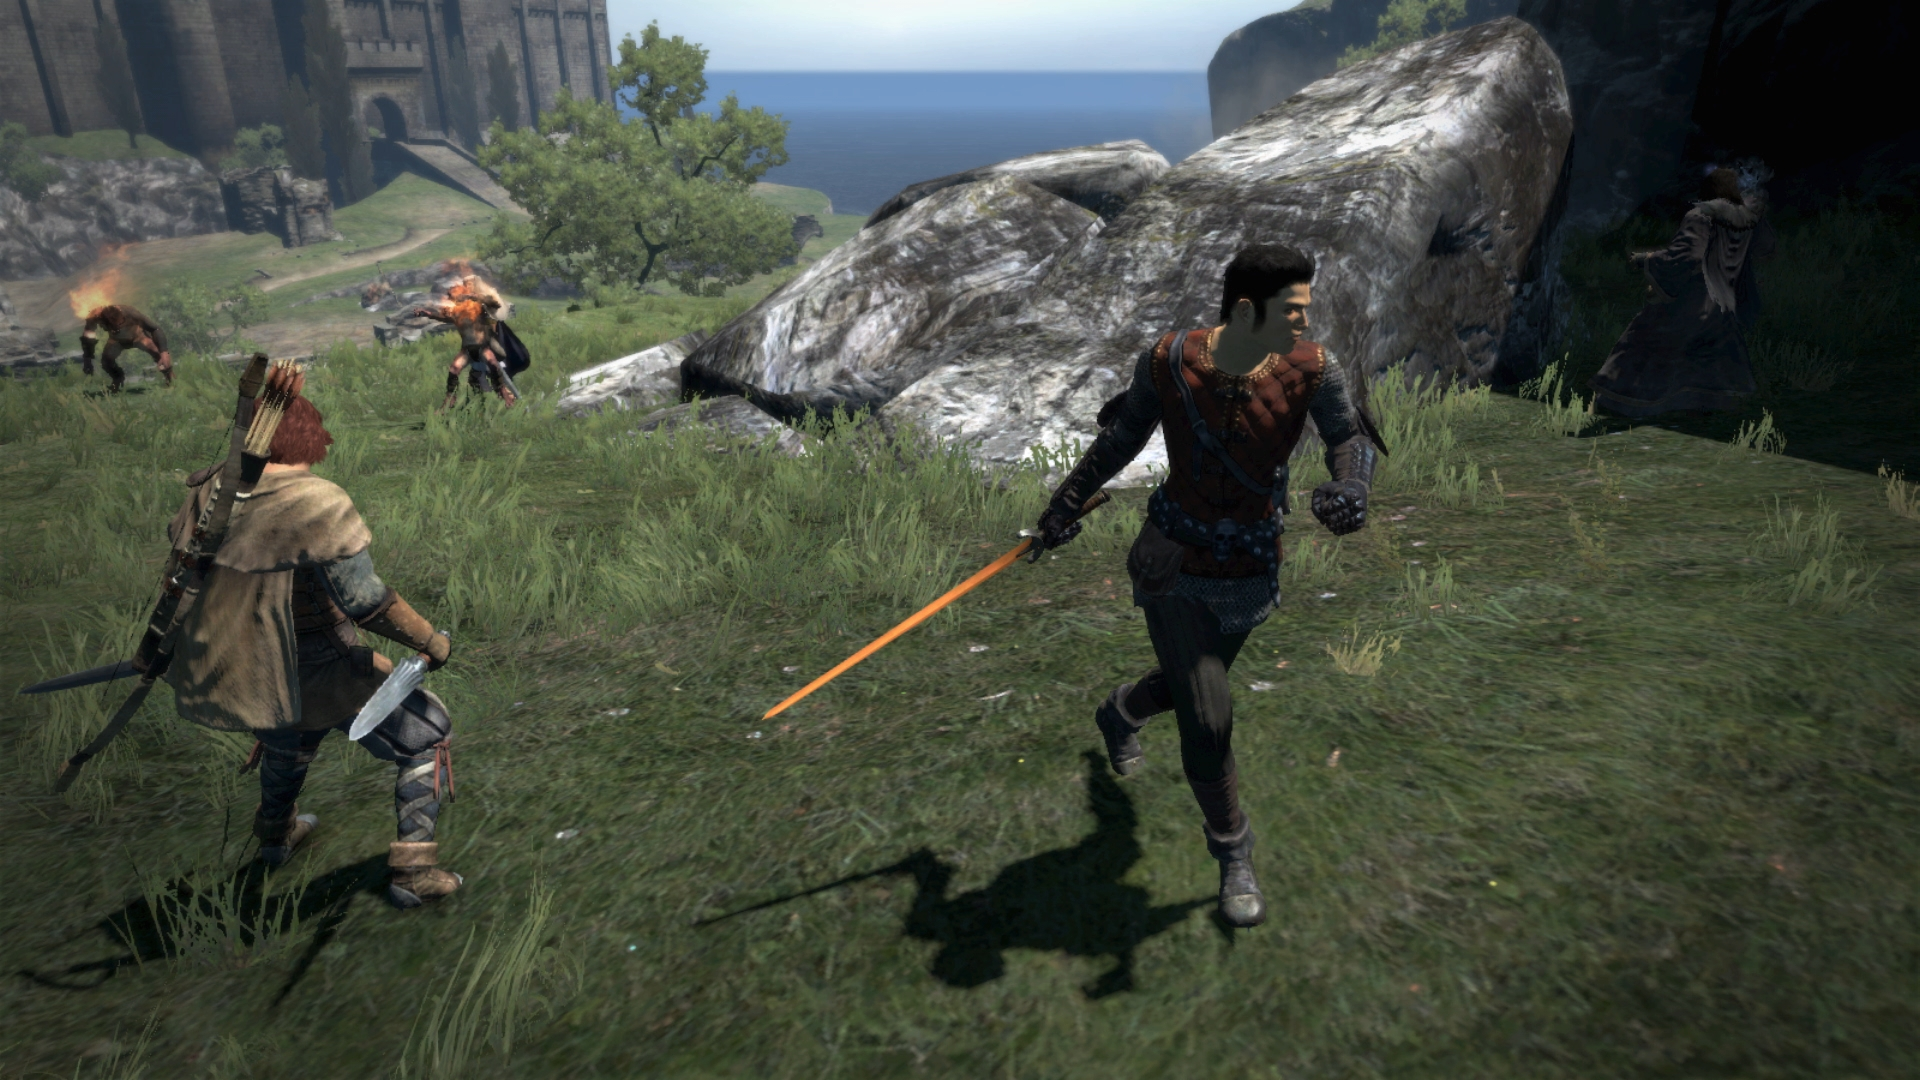 Dragon's Dogma: Dark Arisen for Switch x Travis Strikes Again: No More Heroes collaboration announced